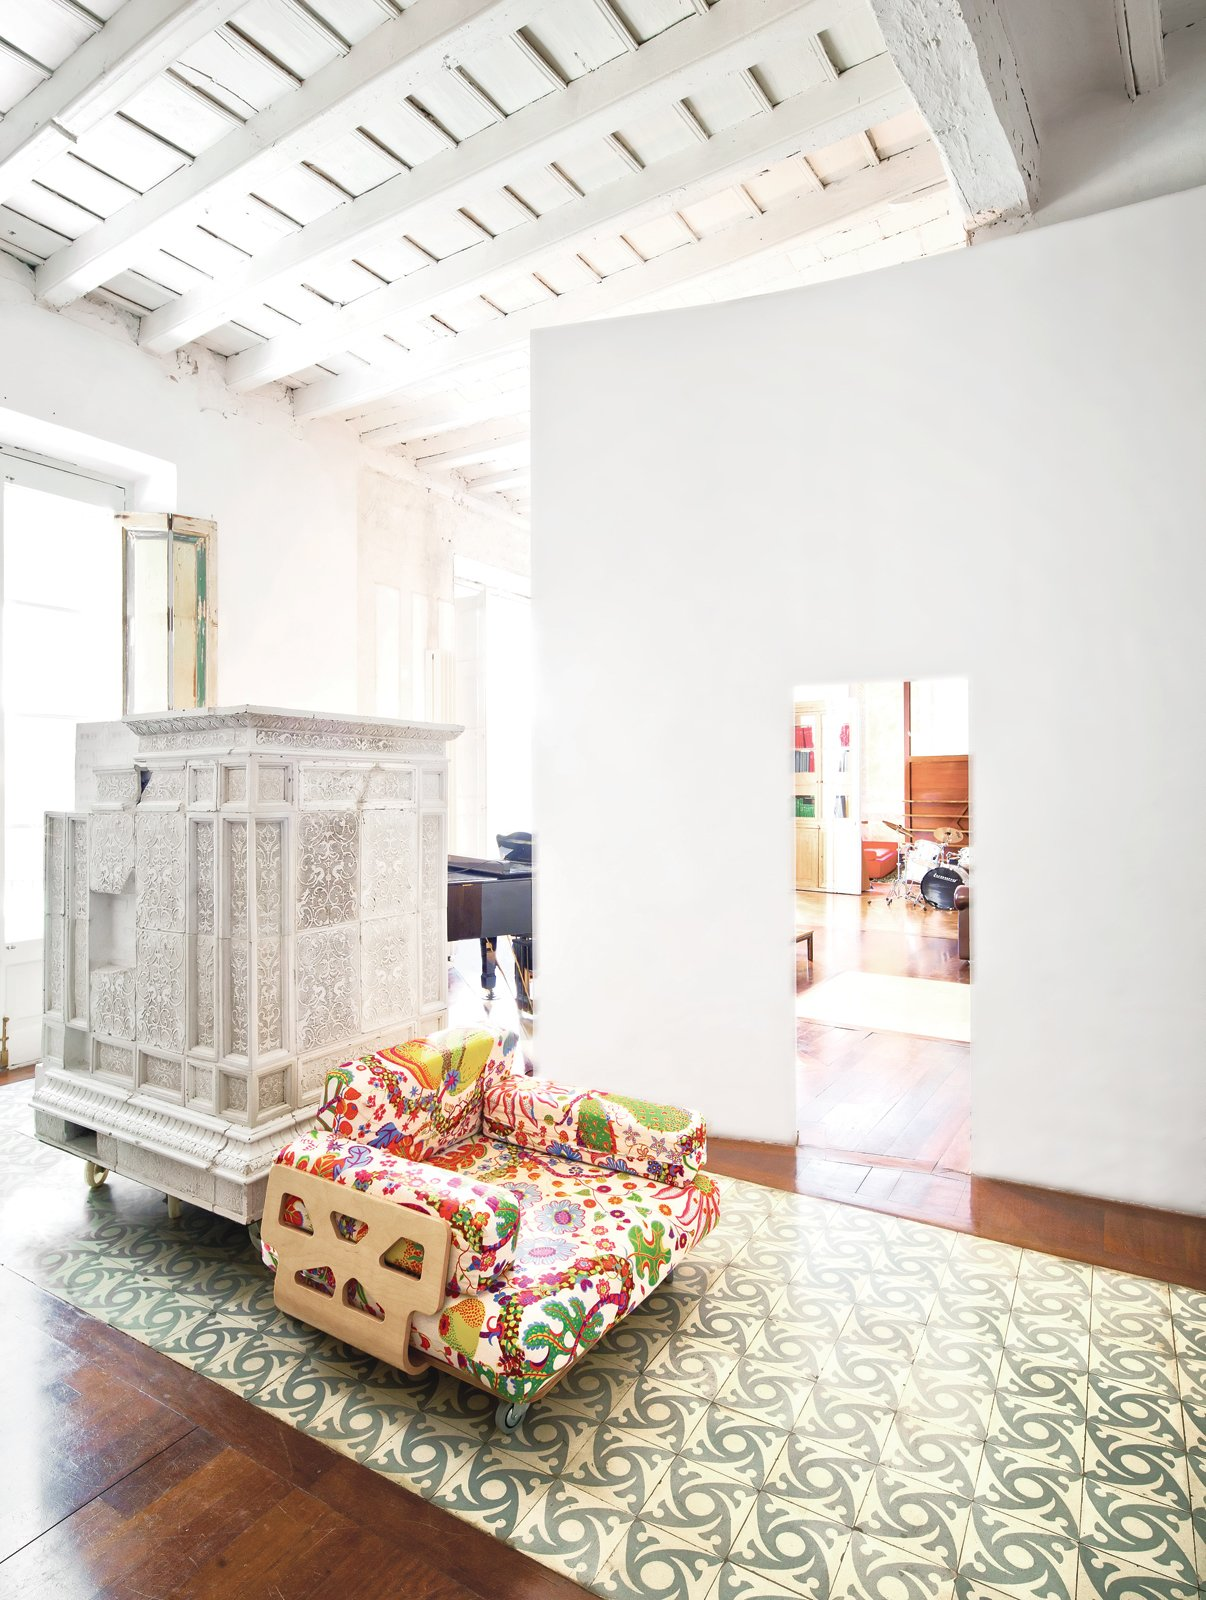 Living Room Paths of Andalusian tile and intervening plaster walls help to delineate space in the expansive apartment, which is centered around an internal entry courtyard. The armchair, designed by Peter and Alison Smithson, is covered in a Josef Frank textile from Just Scandinavian. The white piece just behind it is a repurposed Austrian stove that's now used as a storage device.  Photo 8 of 23 in The Barcelona Home Like No Other